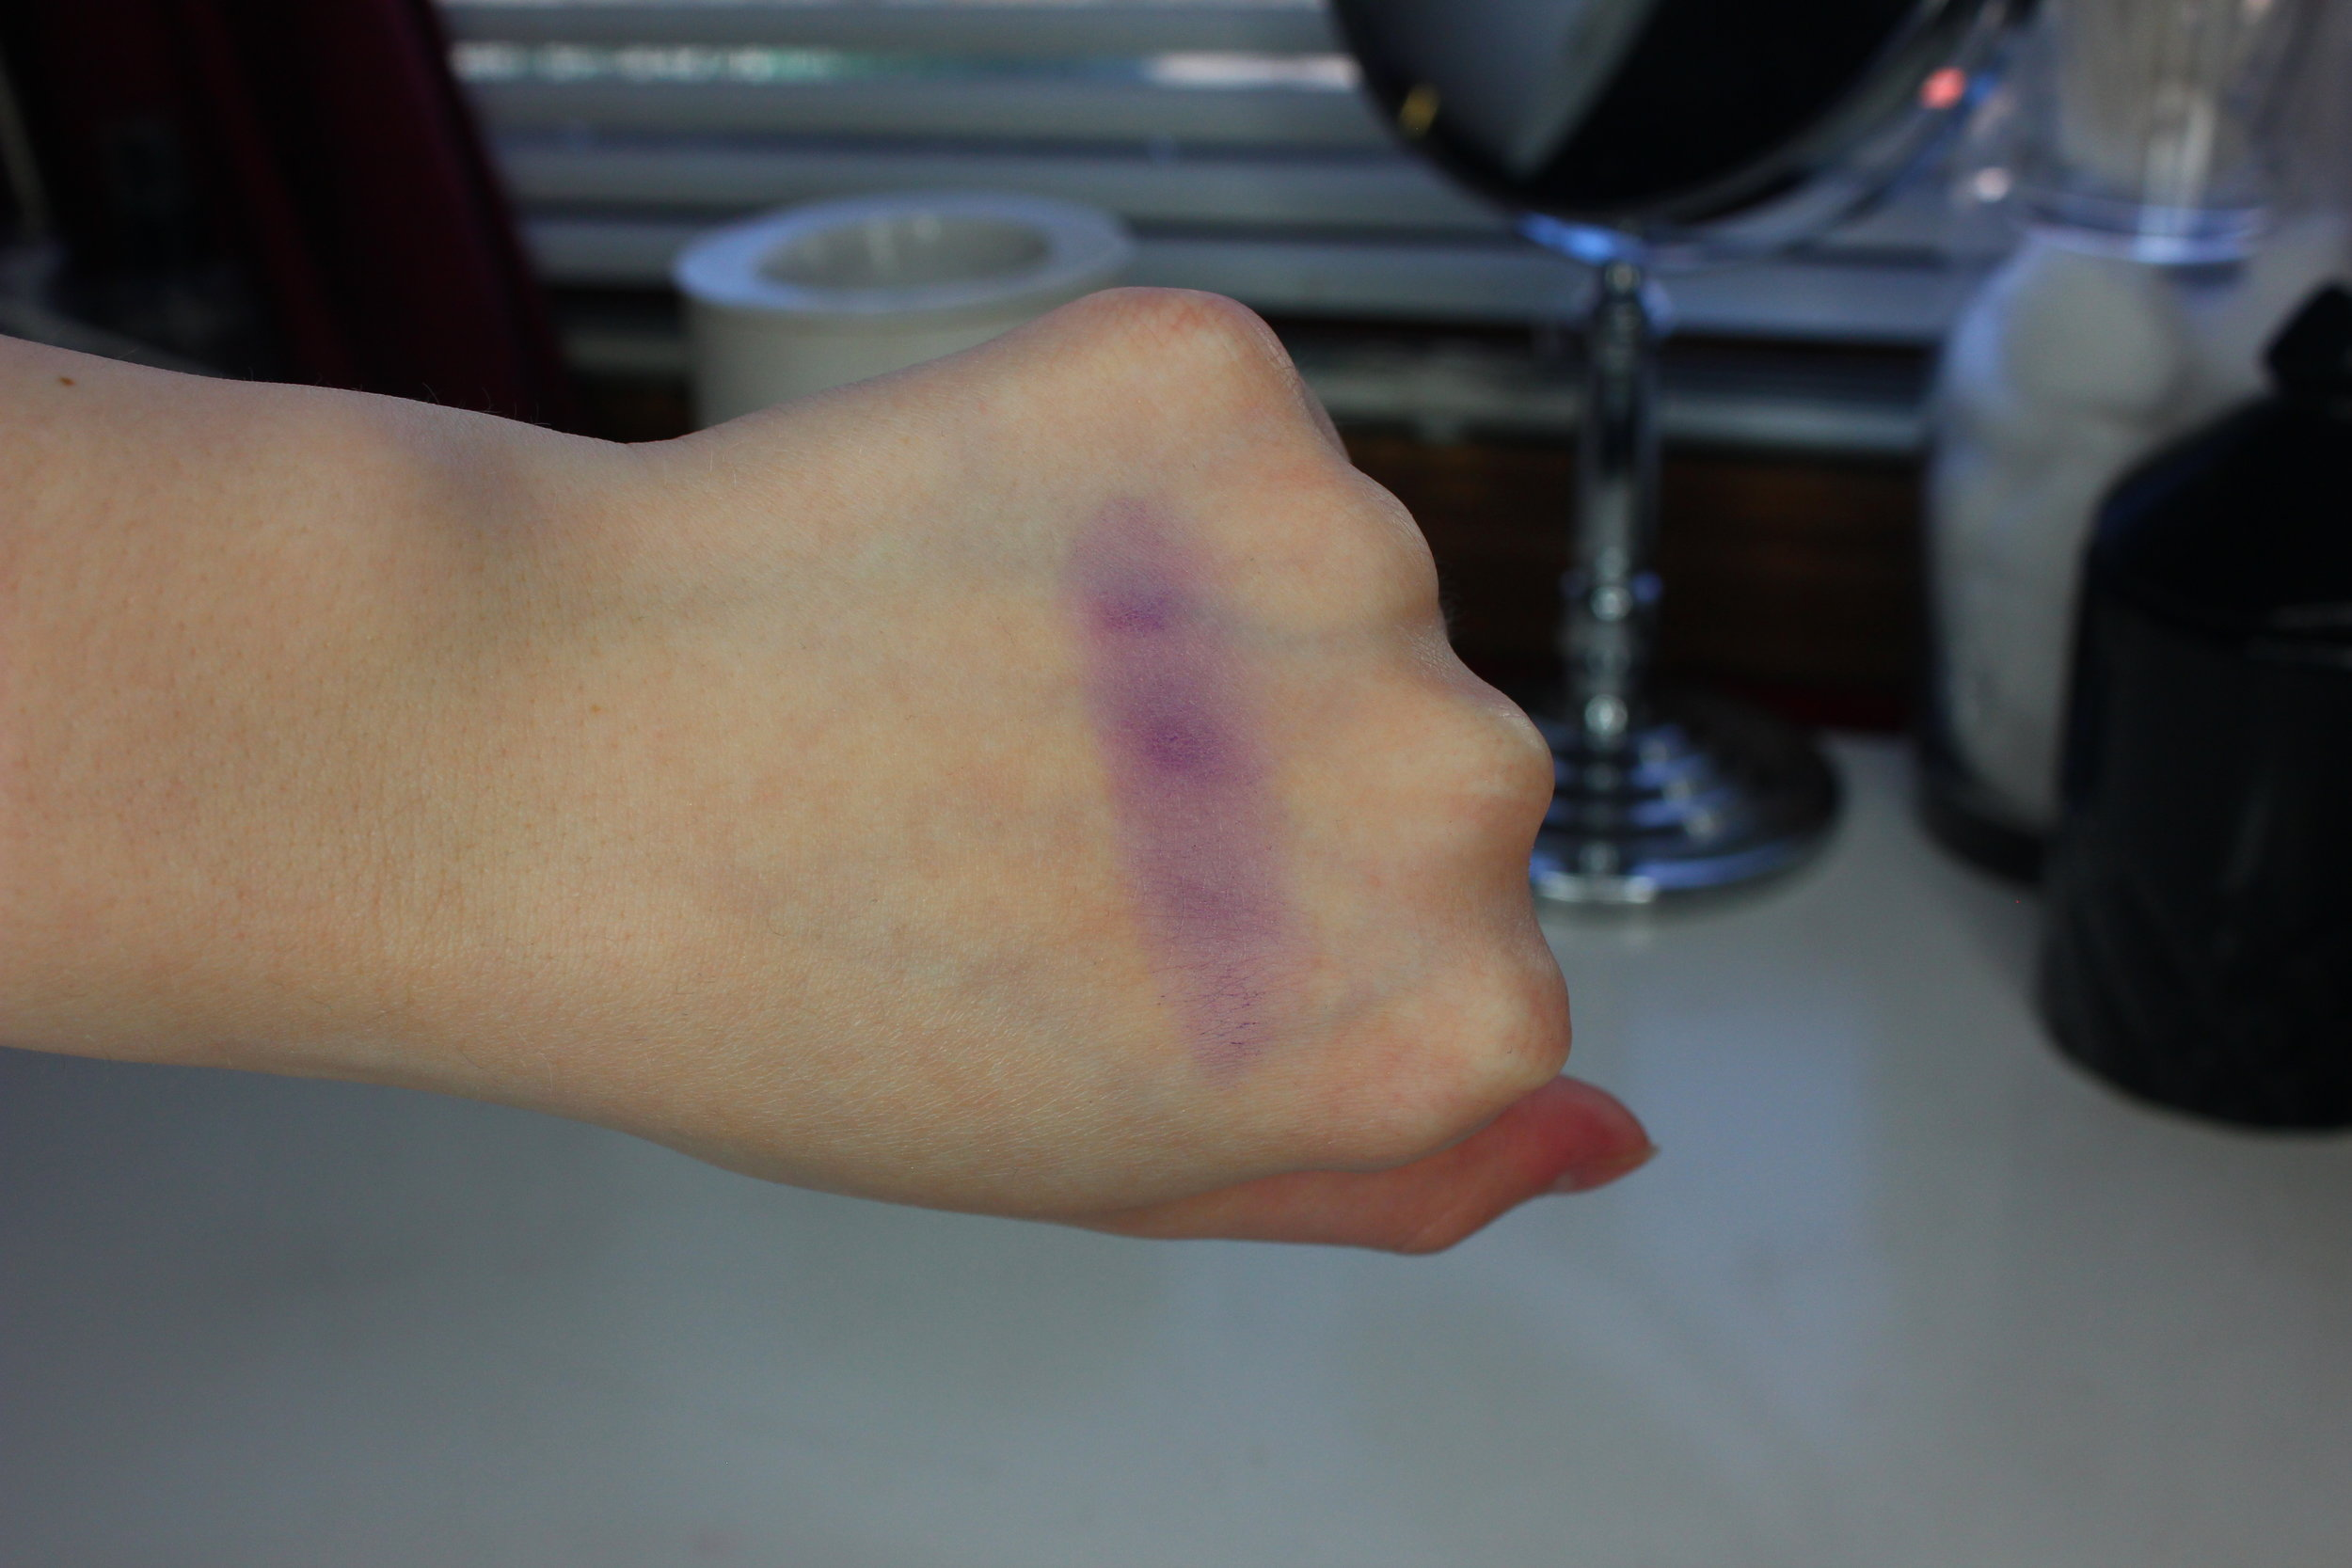 MUG Wistera (New Formula) Swatch 1